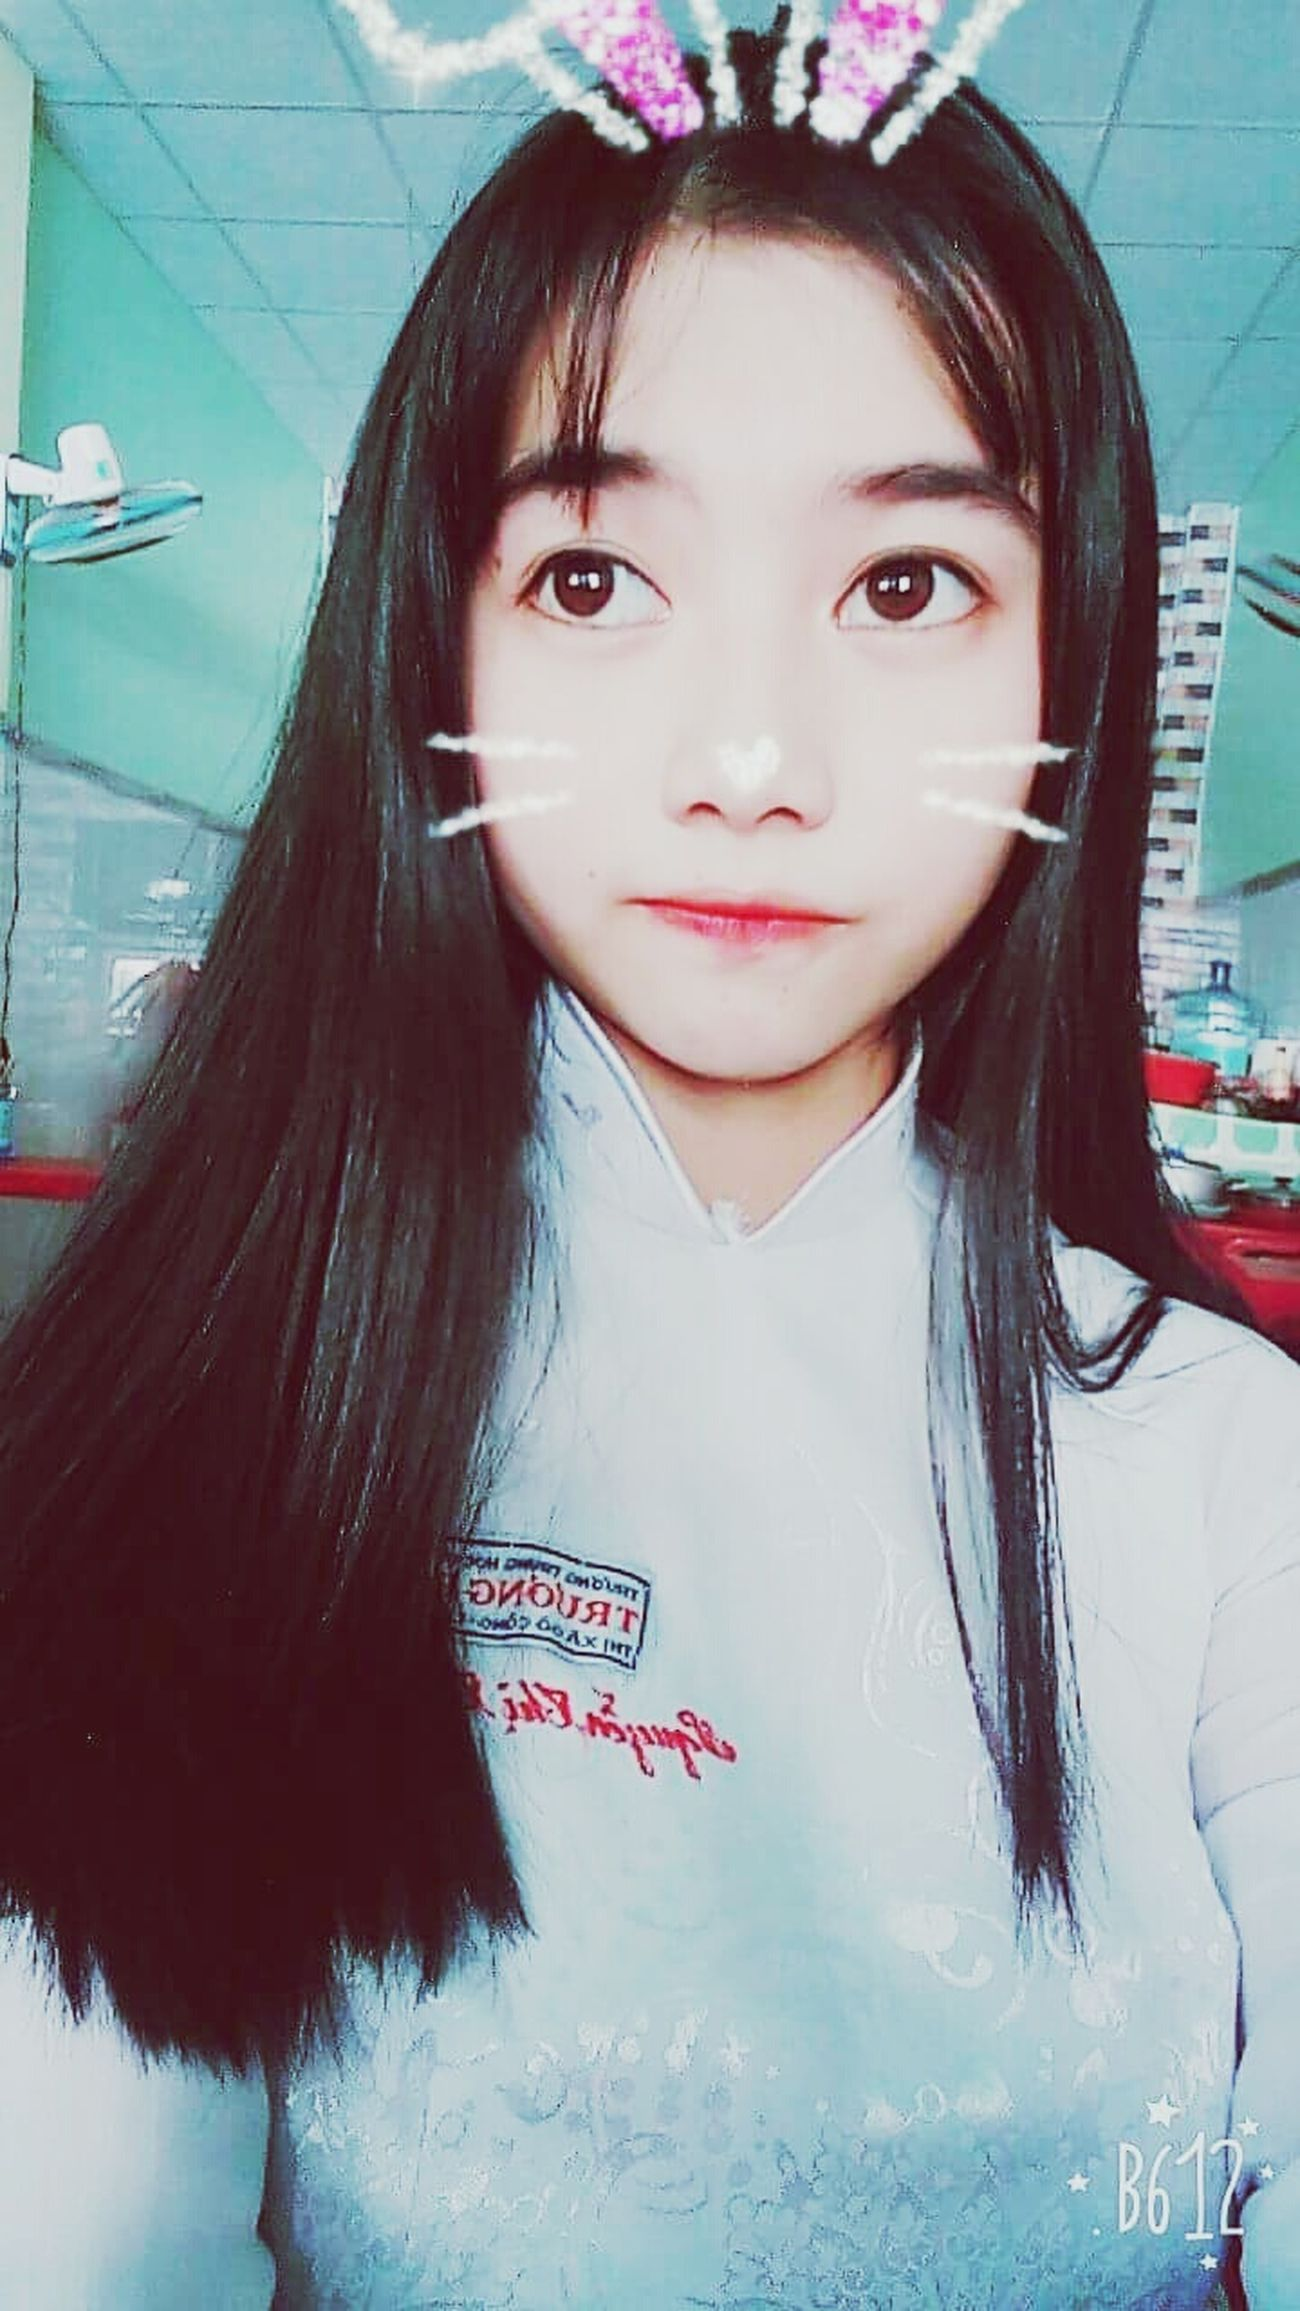 Rabbits 🐇 Rabbit ❤️ Rabat MoroccoLooking At Camera Long Hair Young Adult Young Women One Woman Only Black Hair Only Women One Young Woman Only One Person People Smiling Childhood Yêu áo Dài Ao Dai Vietnam Girls Bestfriend Looking At Camera Long Hair Person Mountain Blond Hair Smile With Me :) ⛄⛄⛄Burr Faces Of EyeEm Love All Living Things